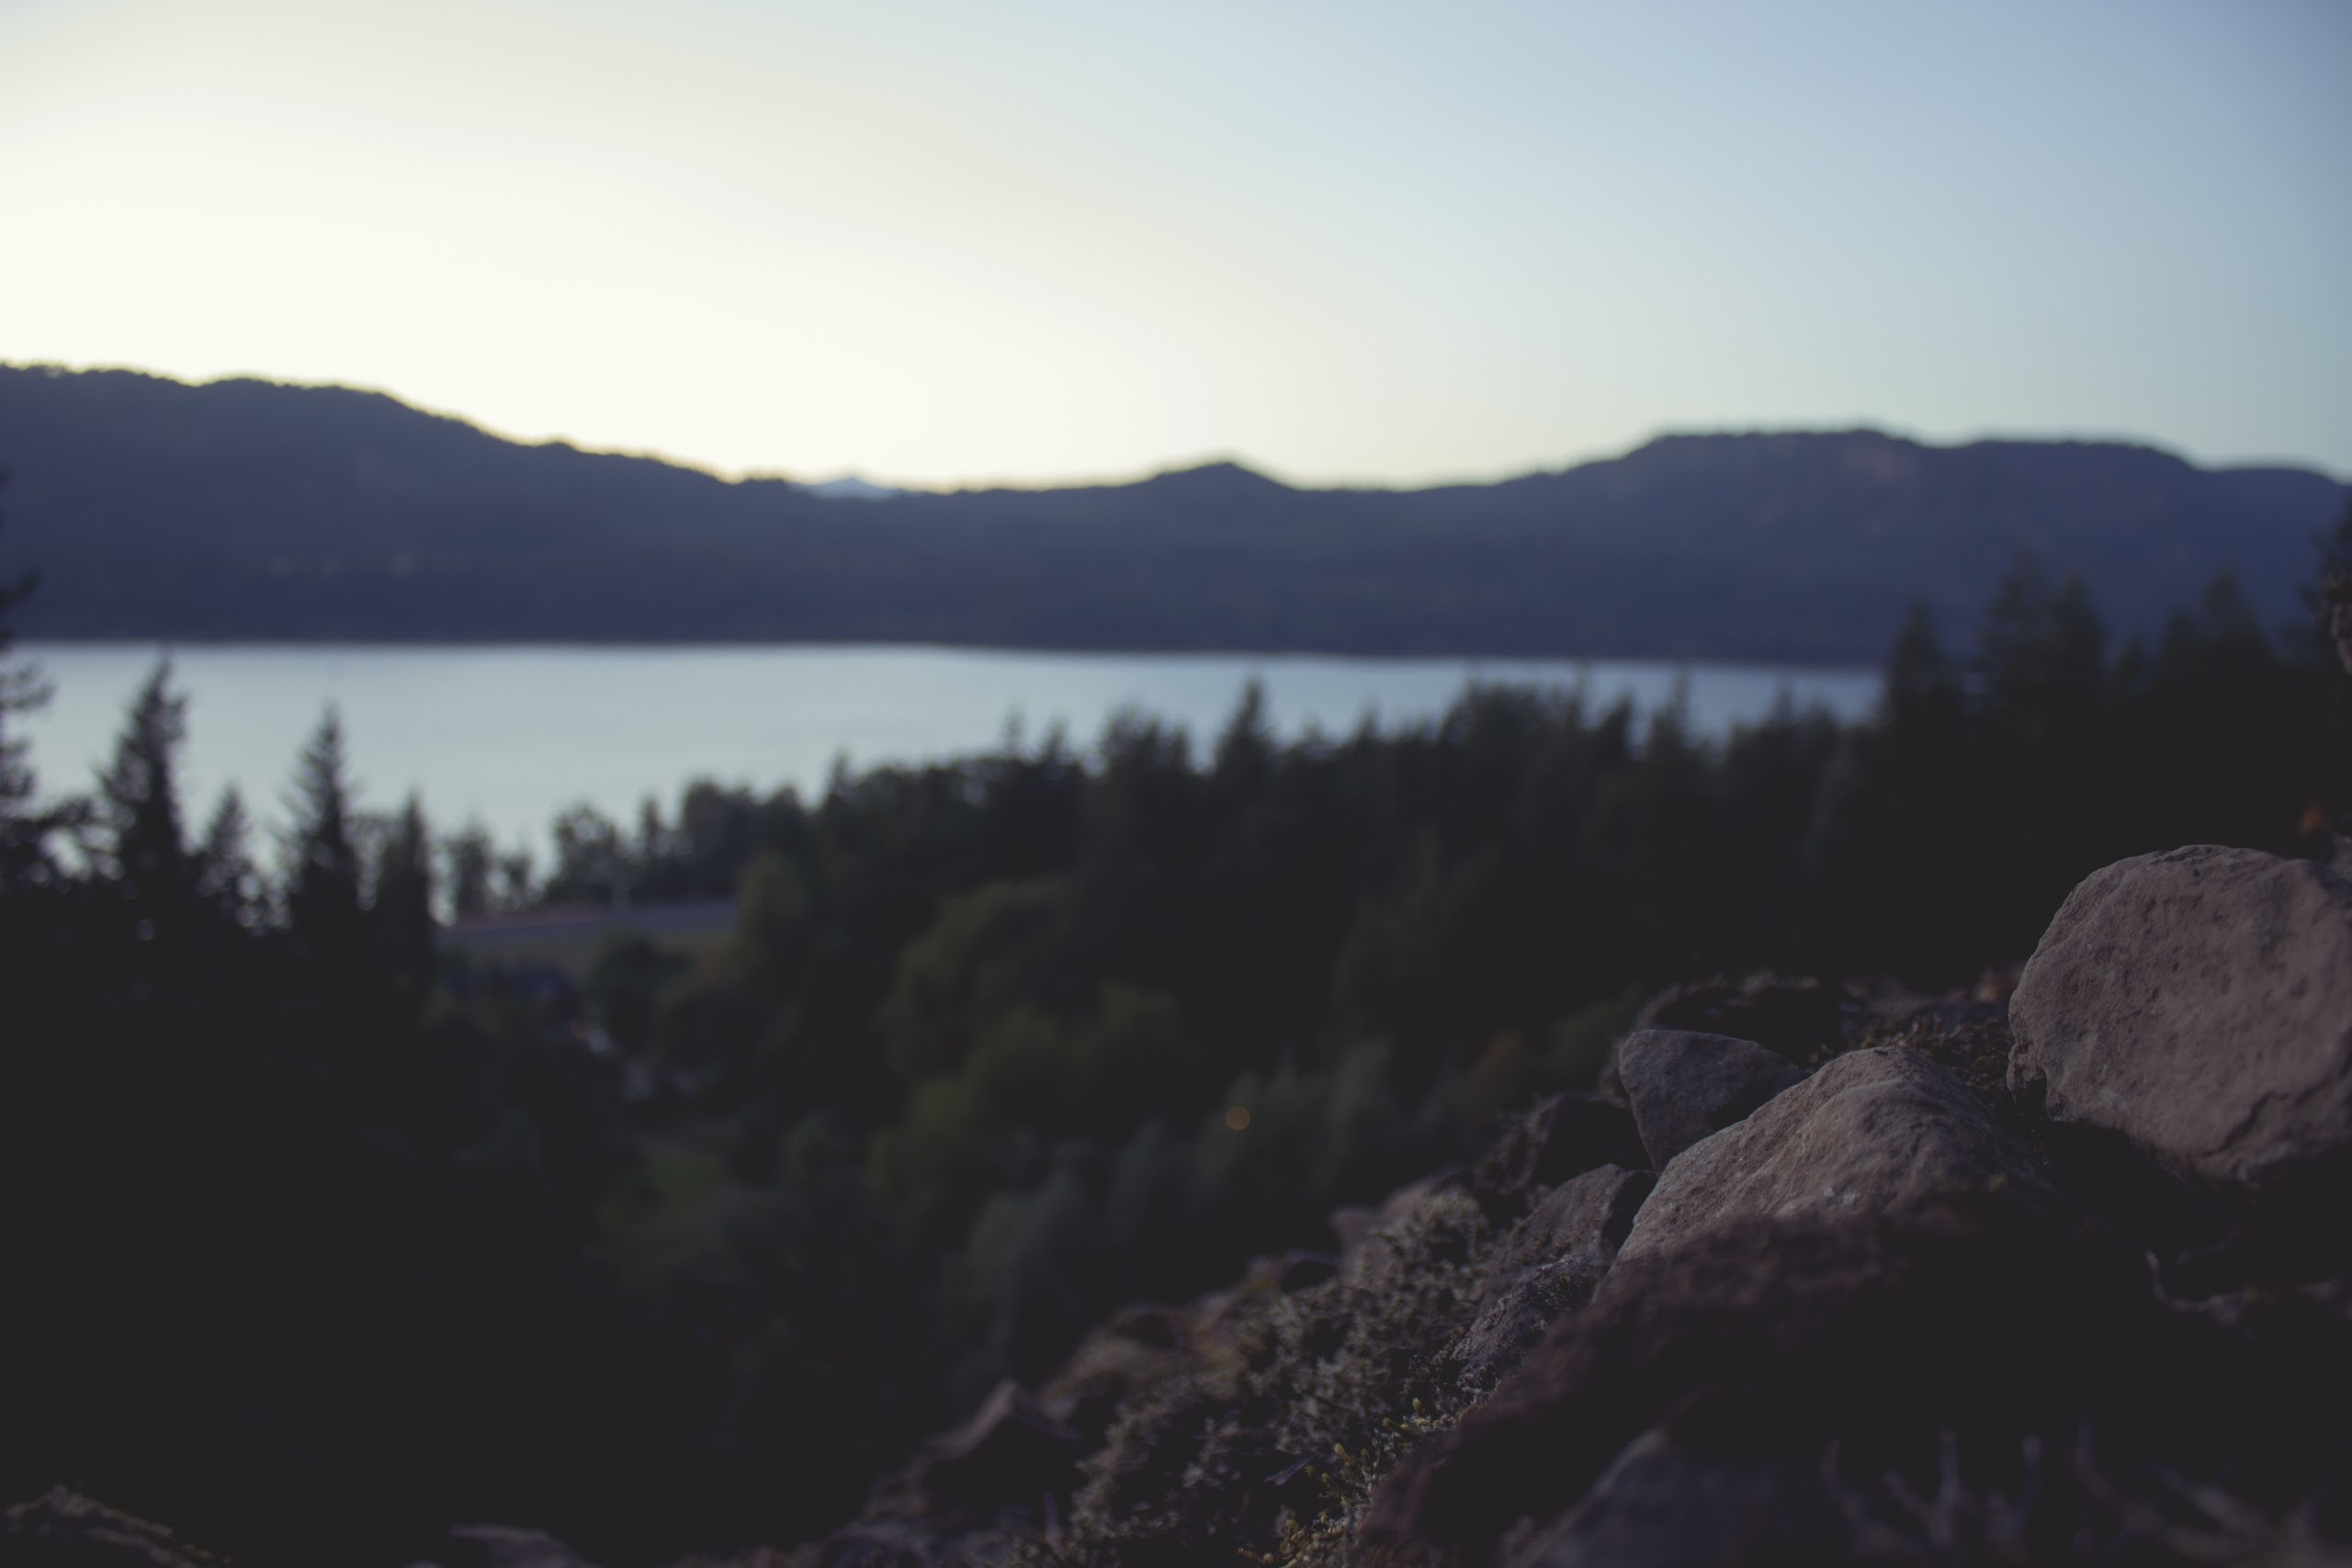 Res: 2560x1707, faded-blurred-forest-and-sea.jpg, ...